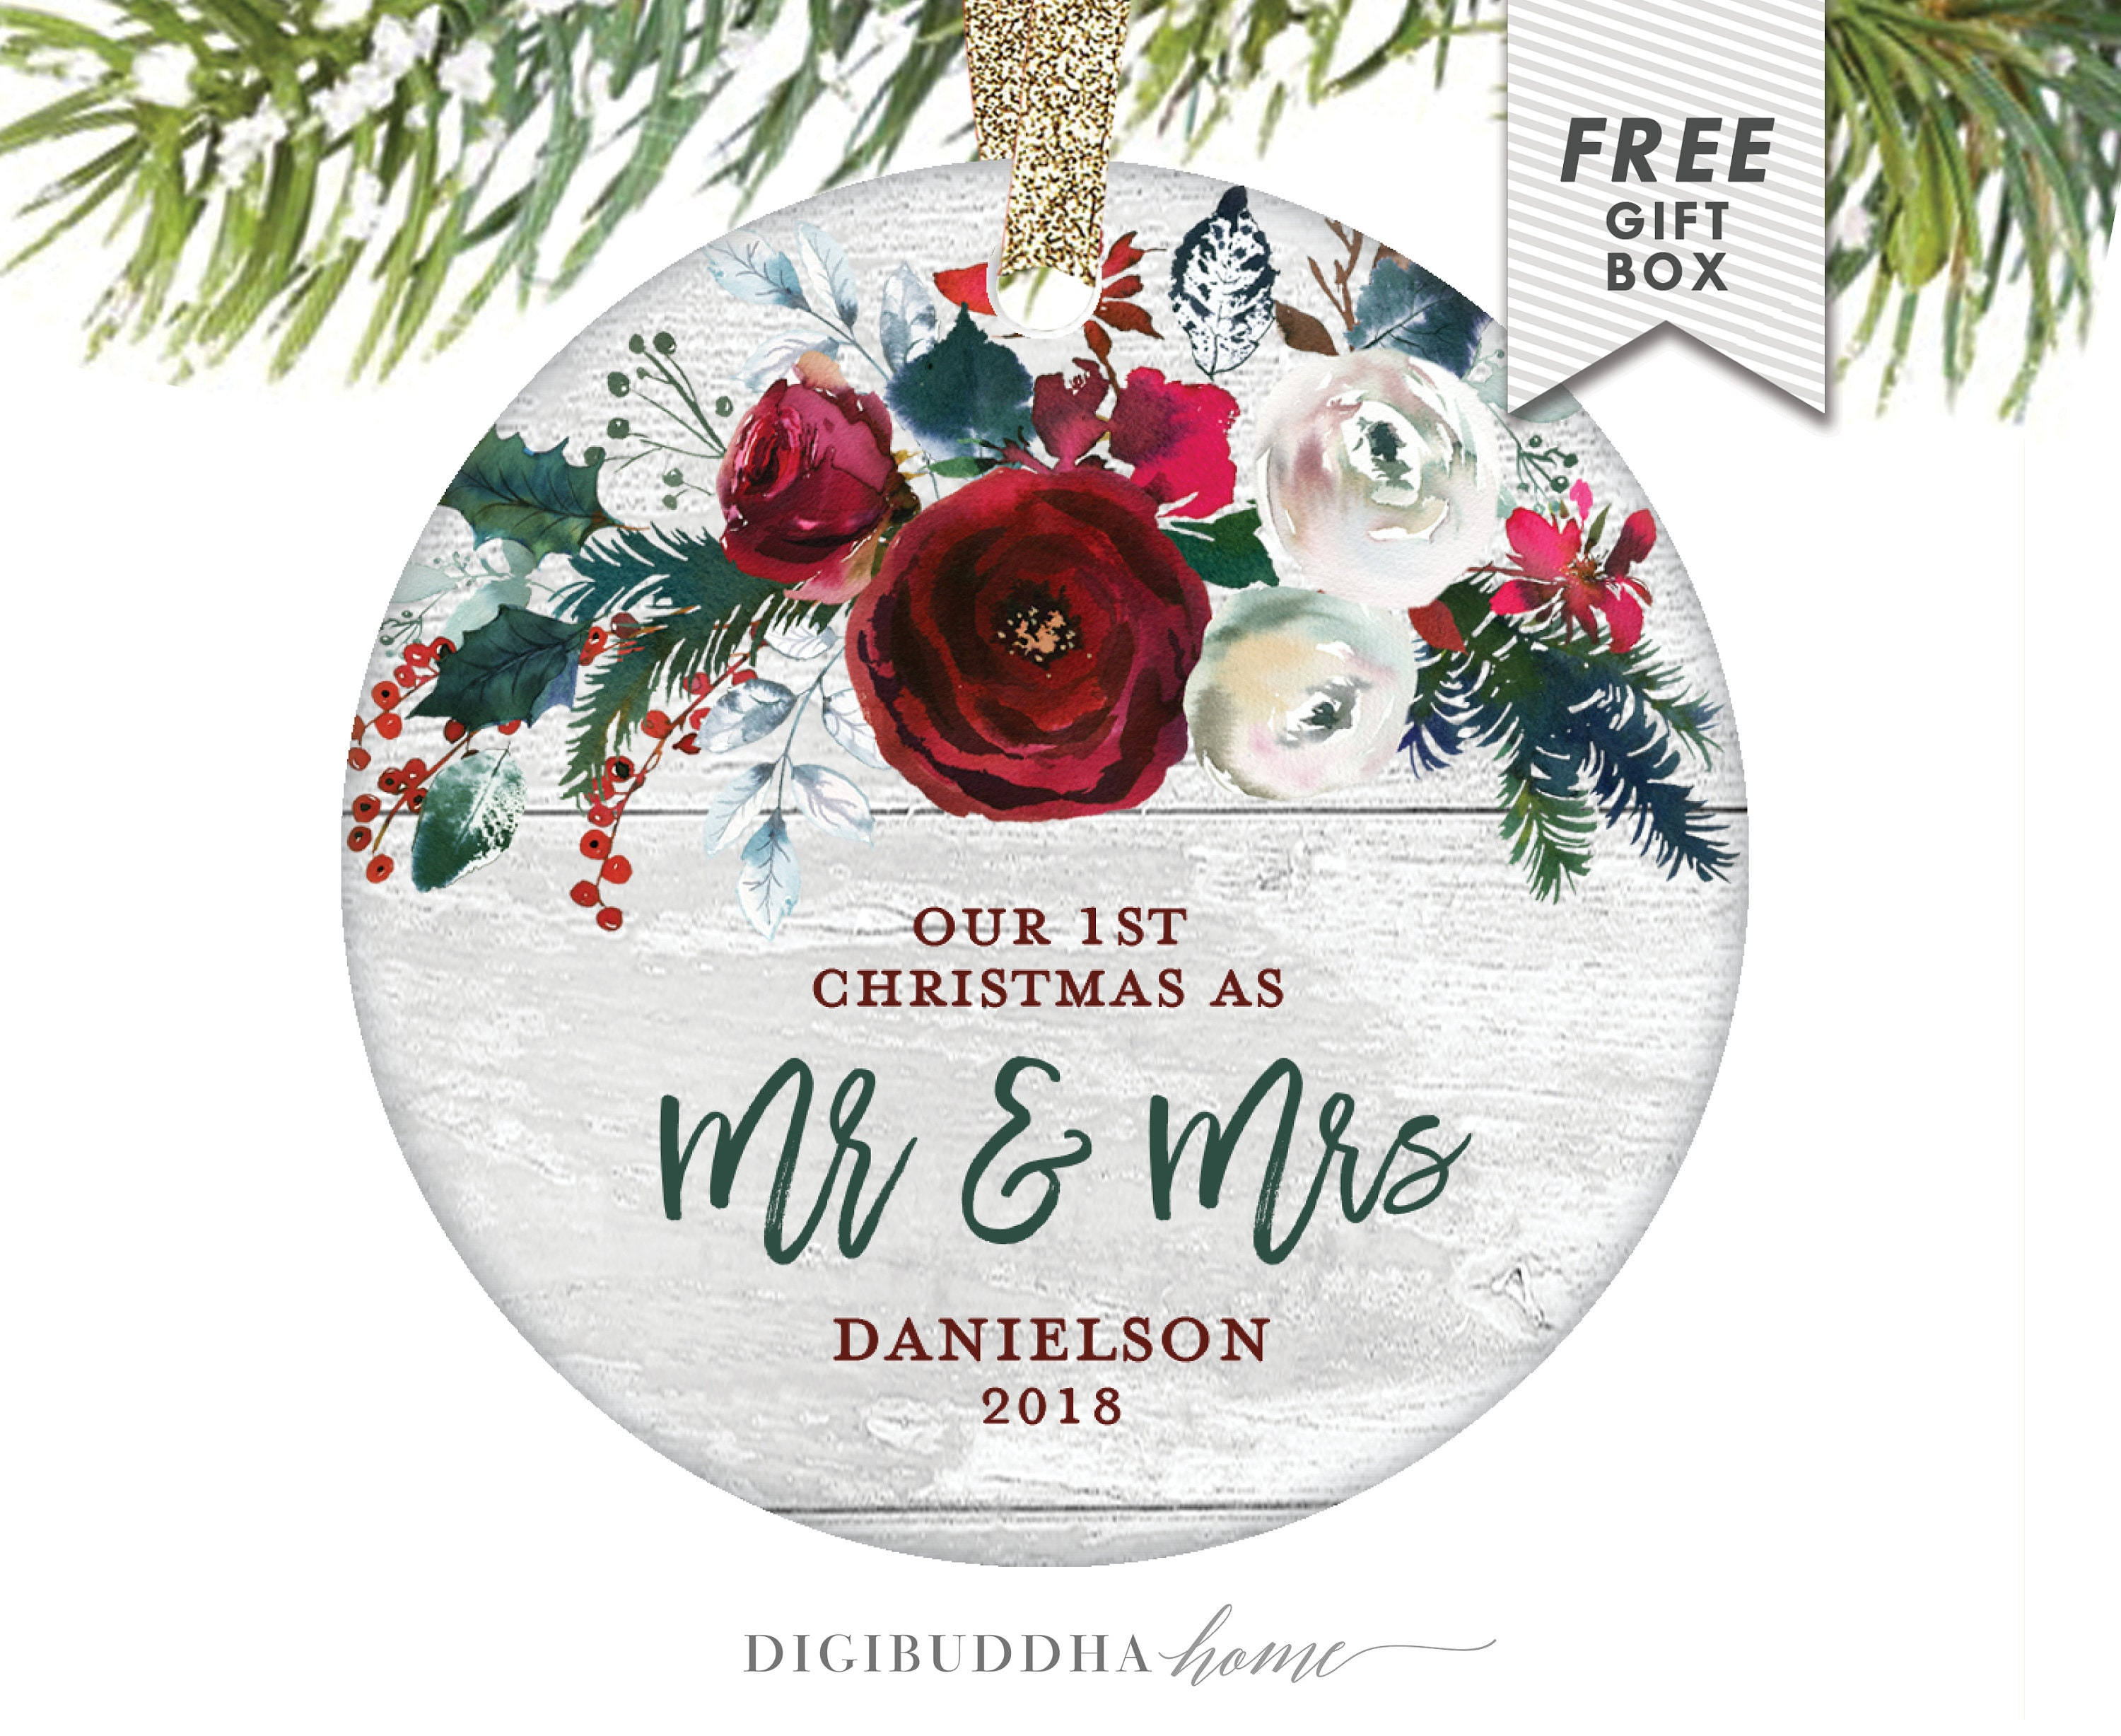 Christmas Ornament Wedding Gift: Wedding Gift Ideas For Bride First Christmas Ornament Mr